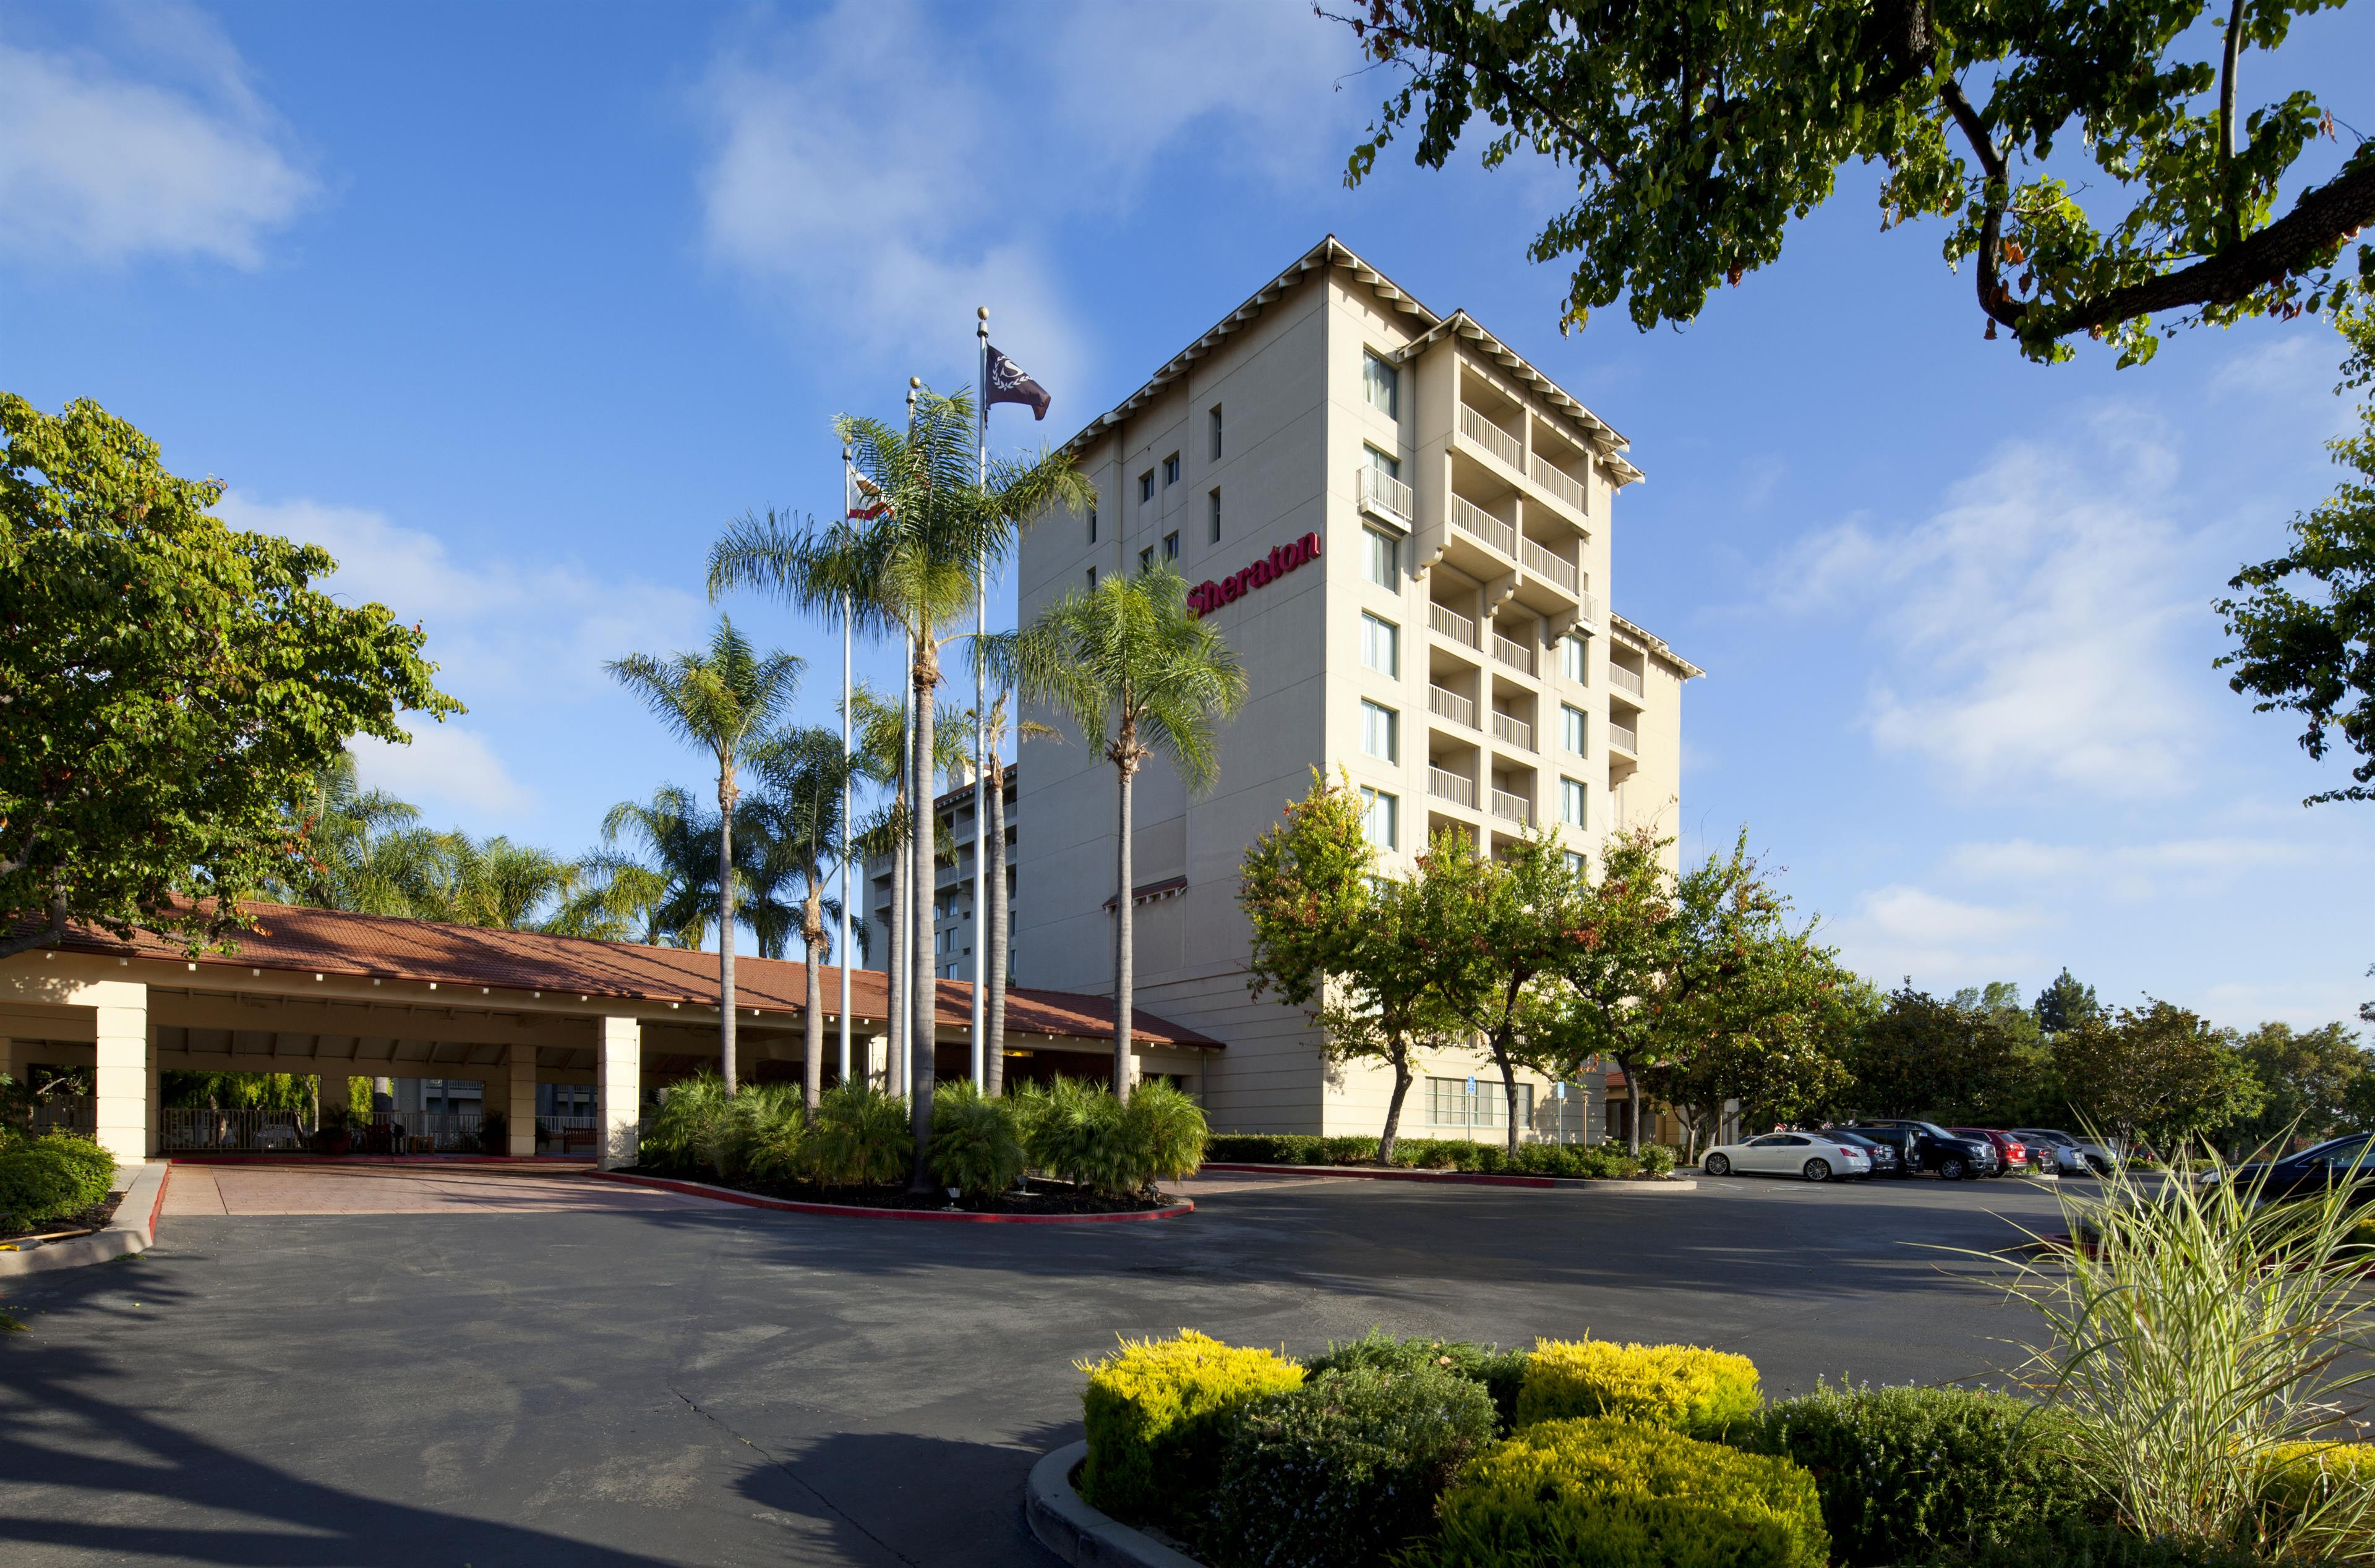 Hotels And Motels In San Jose Ca